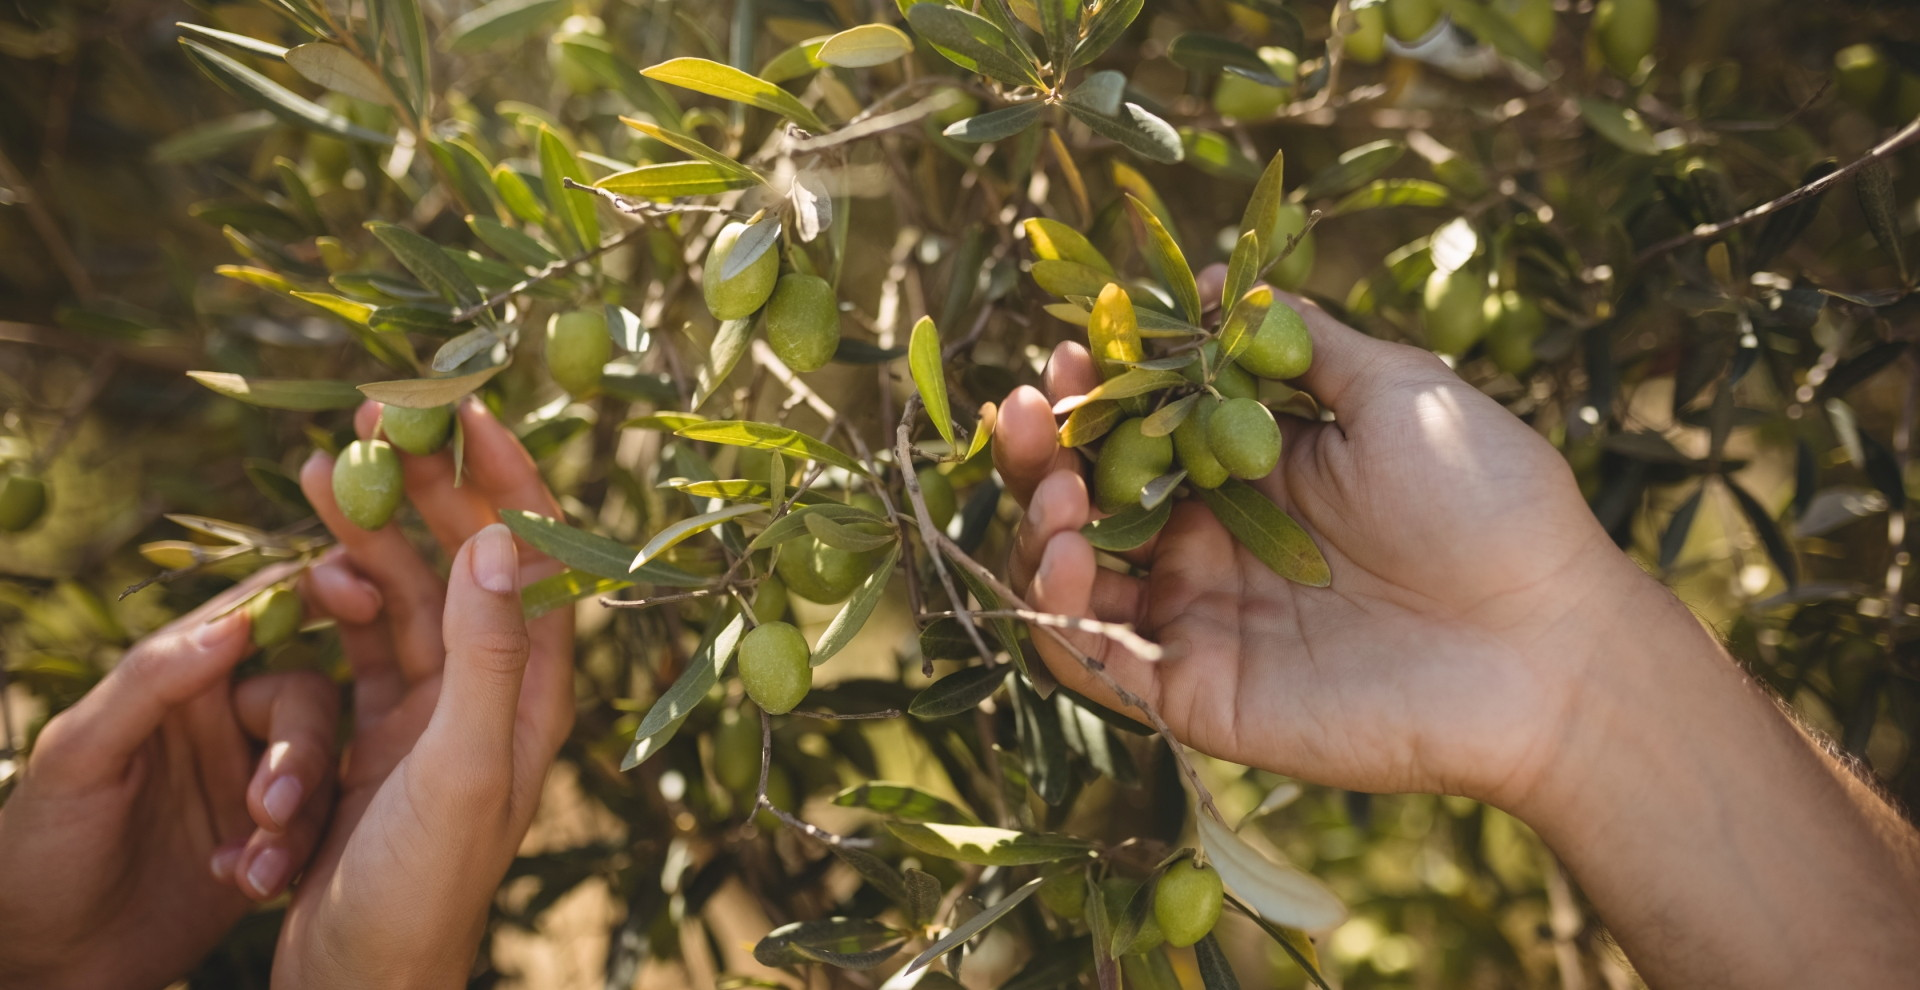 hands-of-couple-holding-olive-tree-at-farm-7GQ42FE